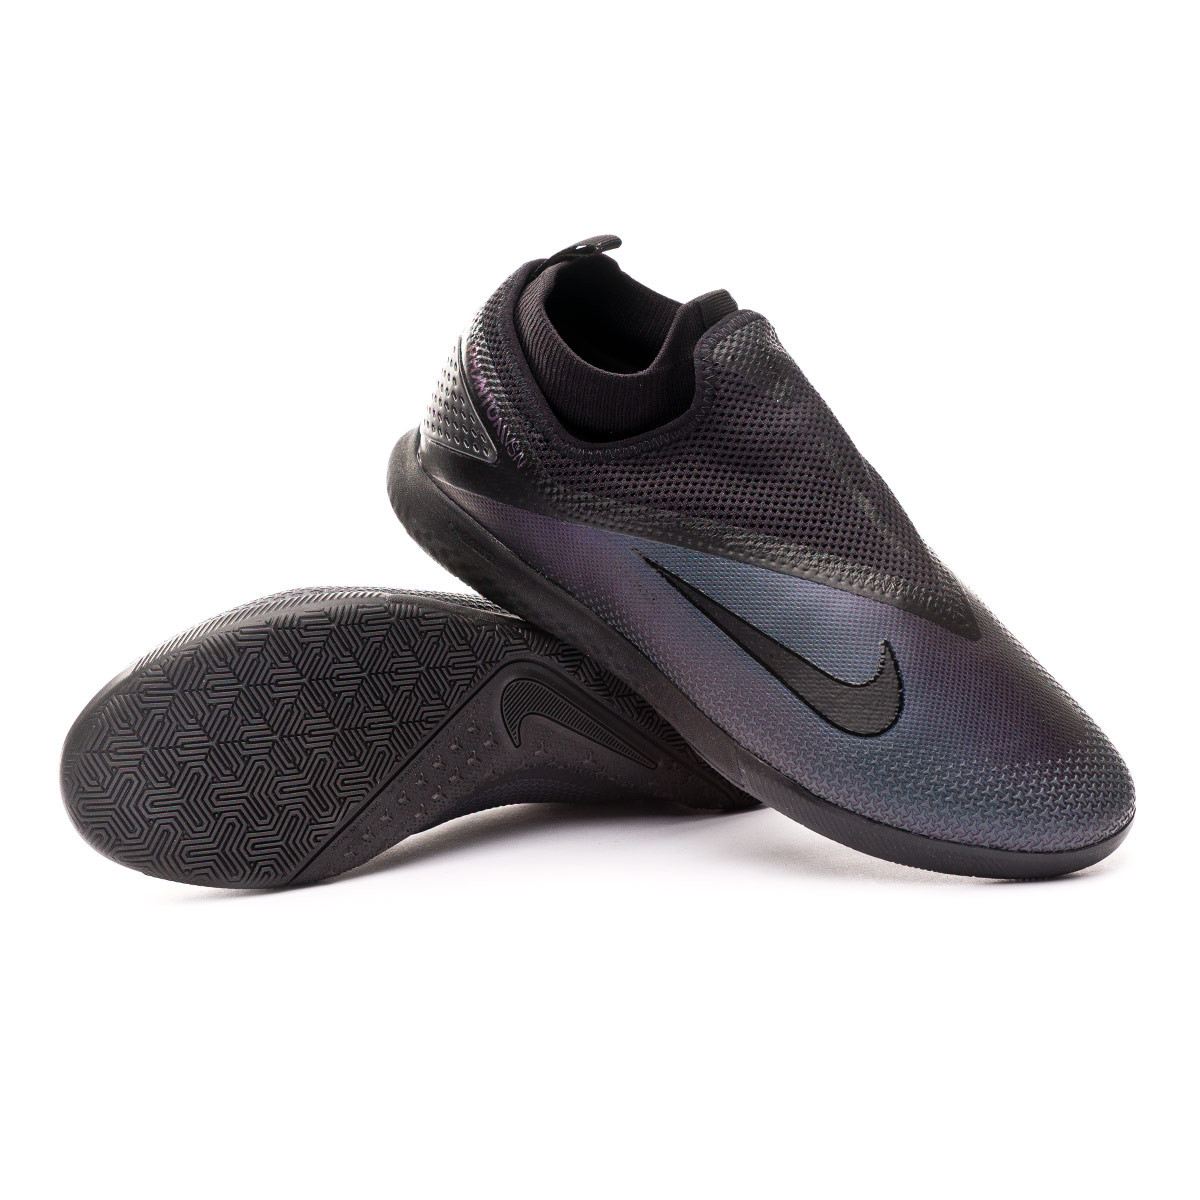 Brote Avanzar Resentimiento  Futsal Boot Nike React Phantom Vision II Pro DF IC Black - Football store  Fútbol Emotion